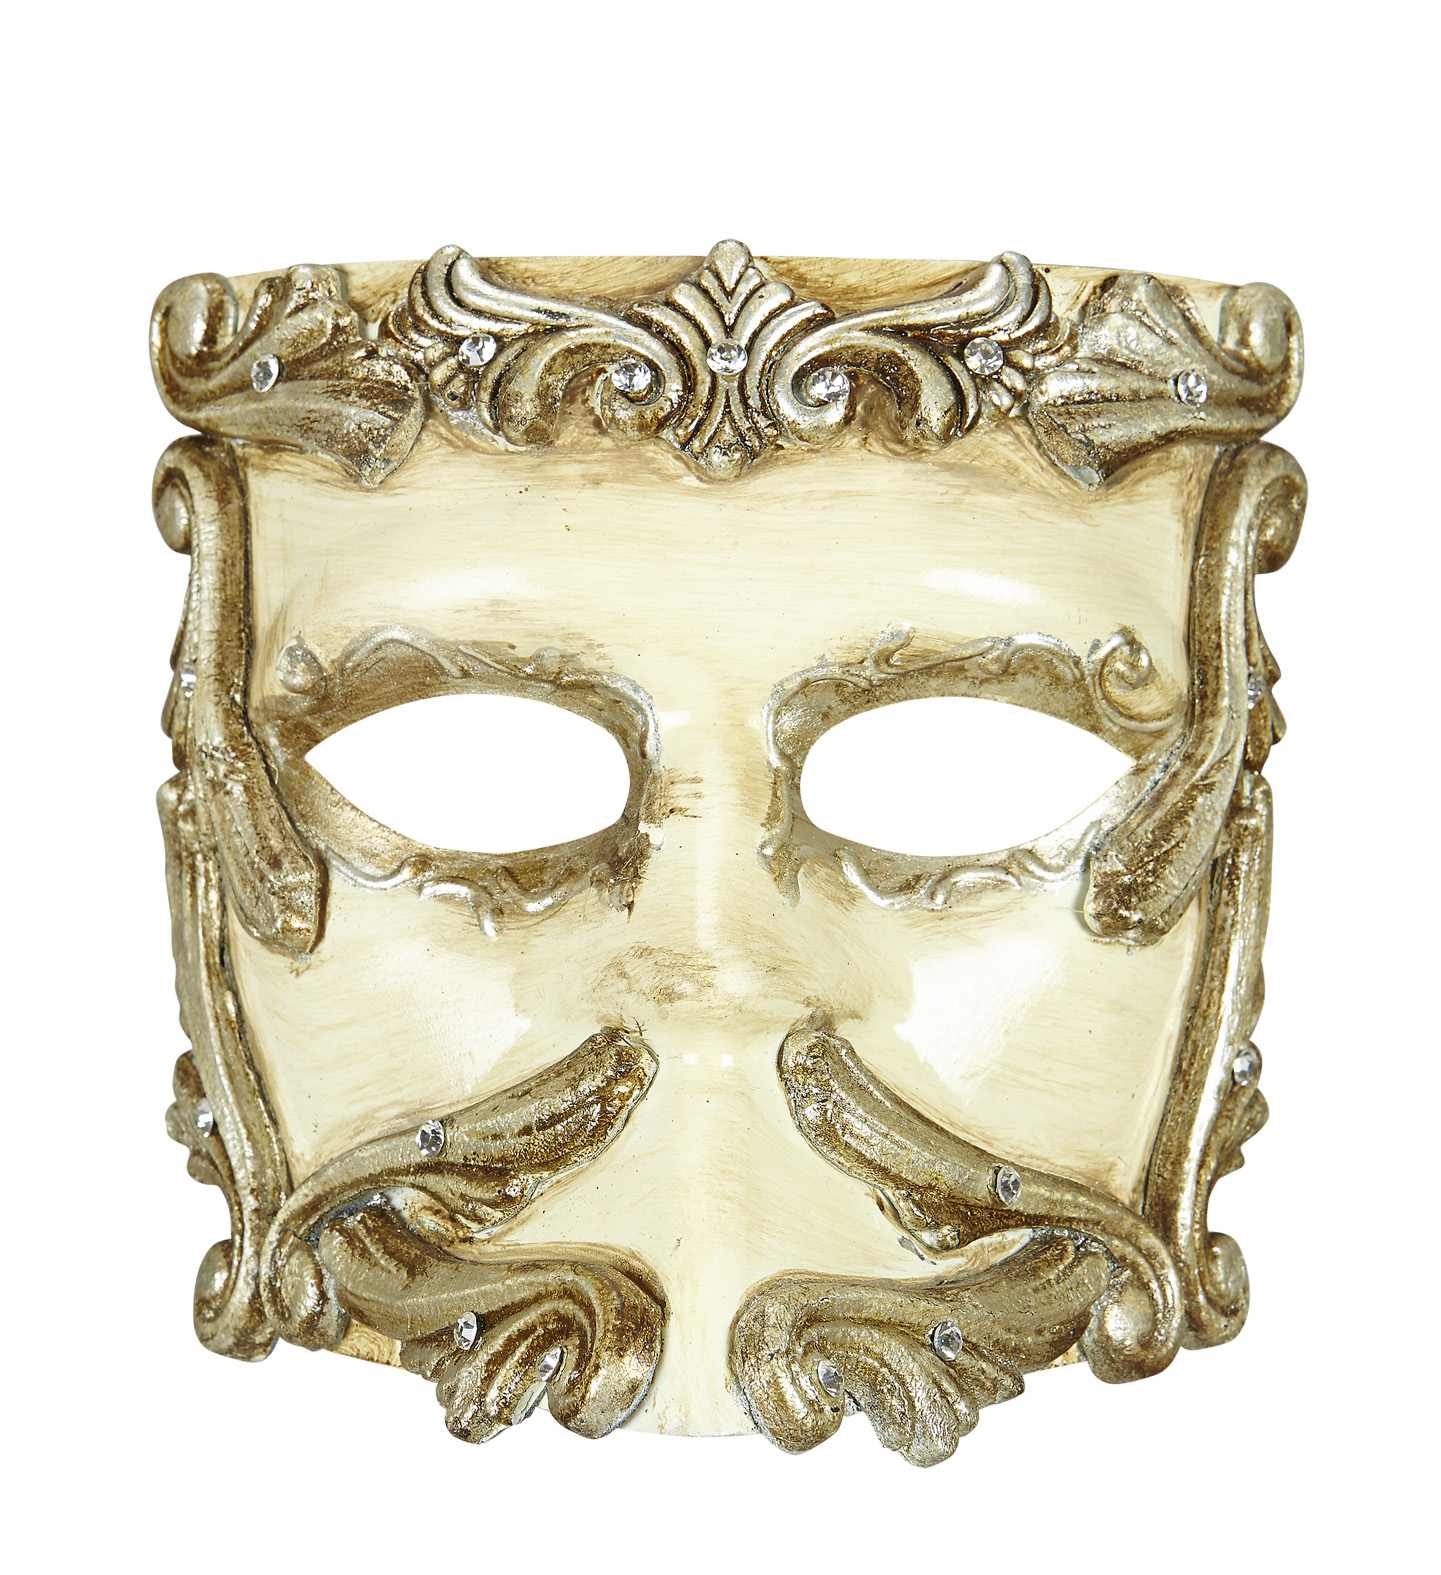 Deluxe Ivory Baroque Casanova Mask With Strass Eyemask Fancy Dress